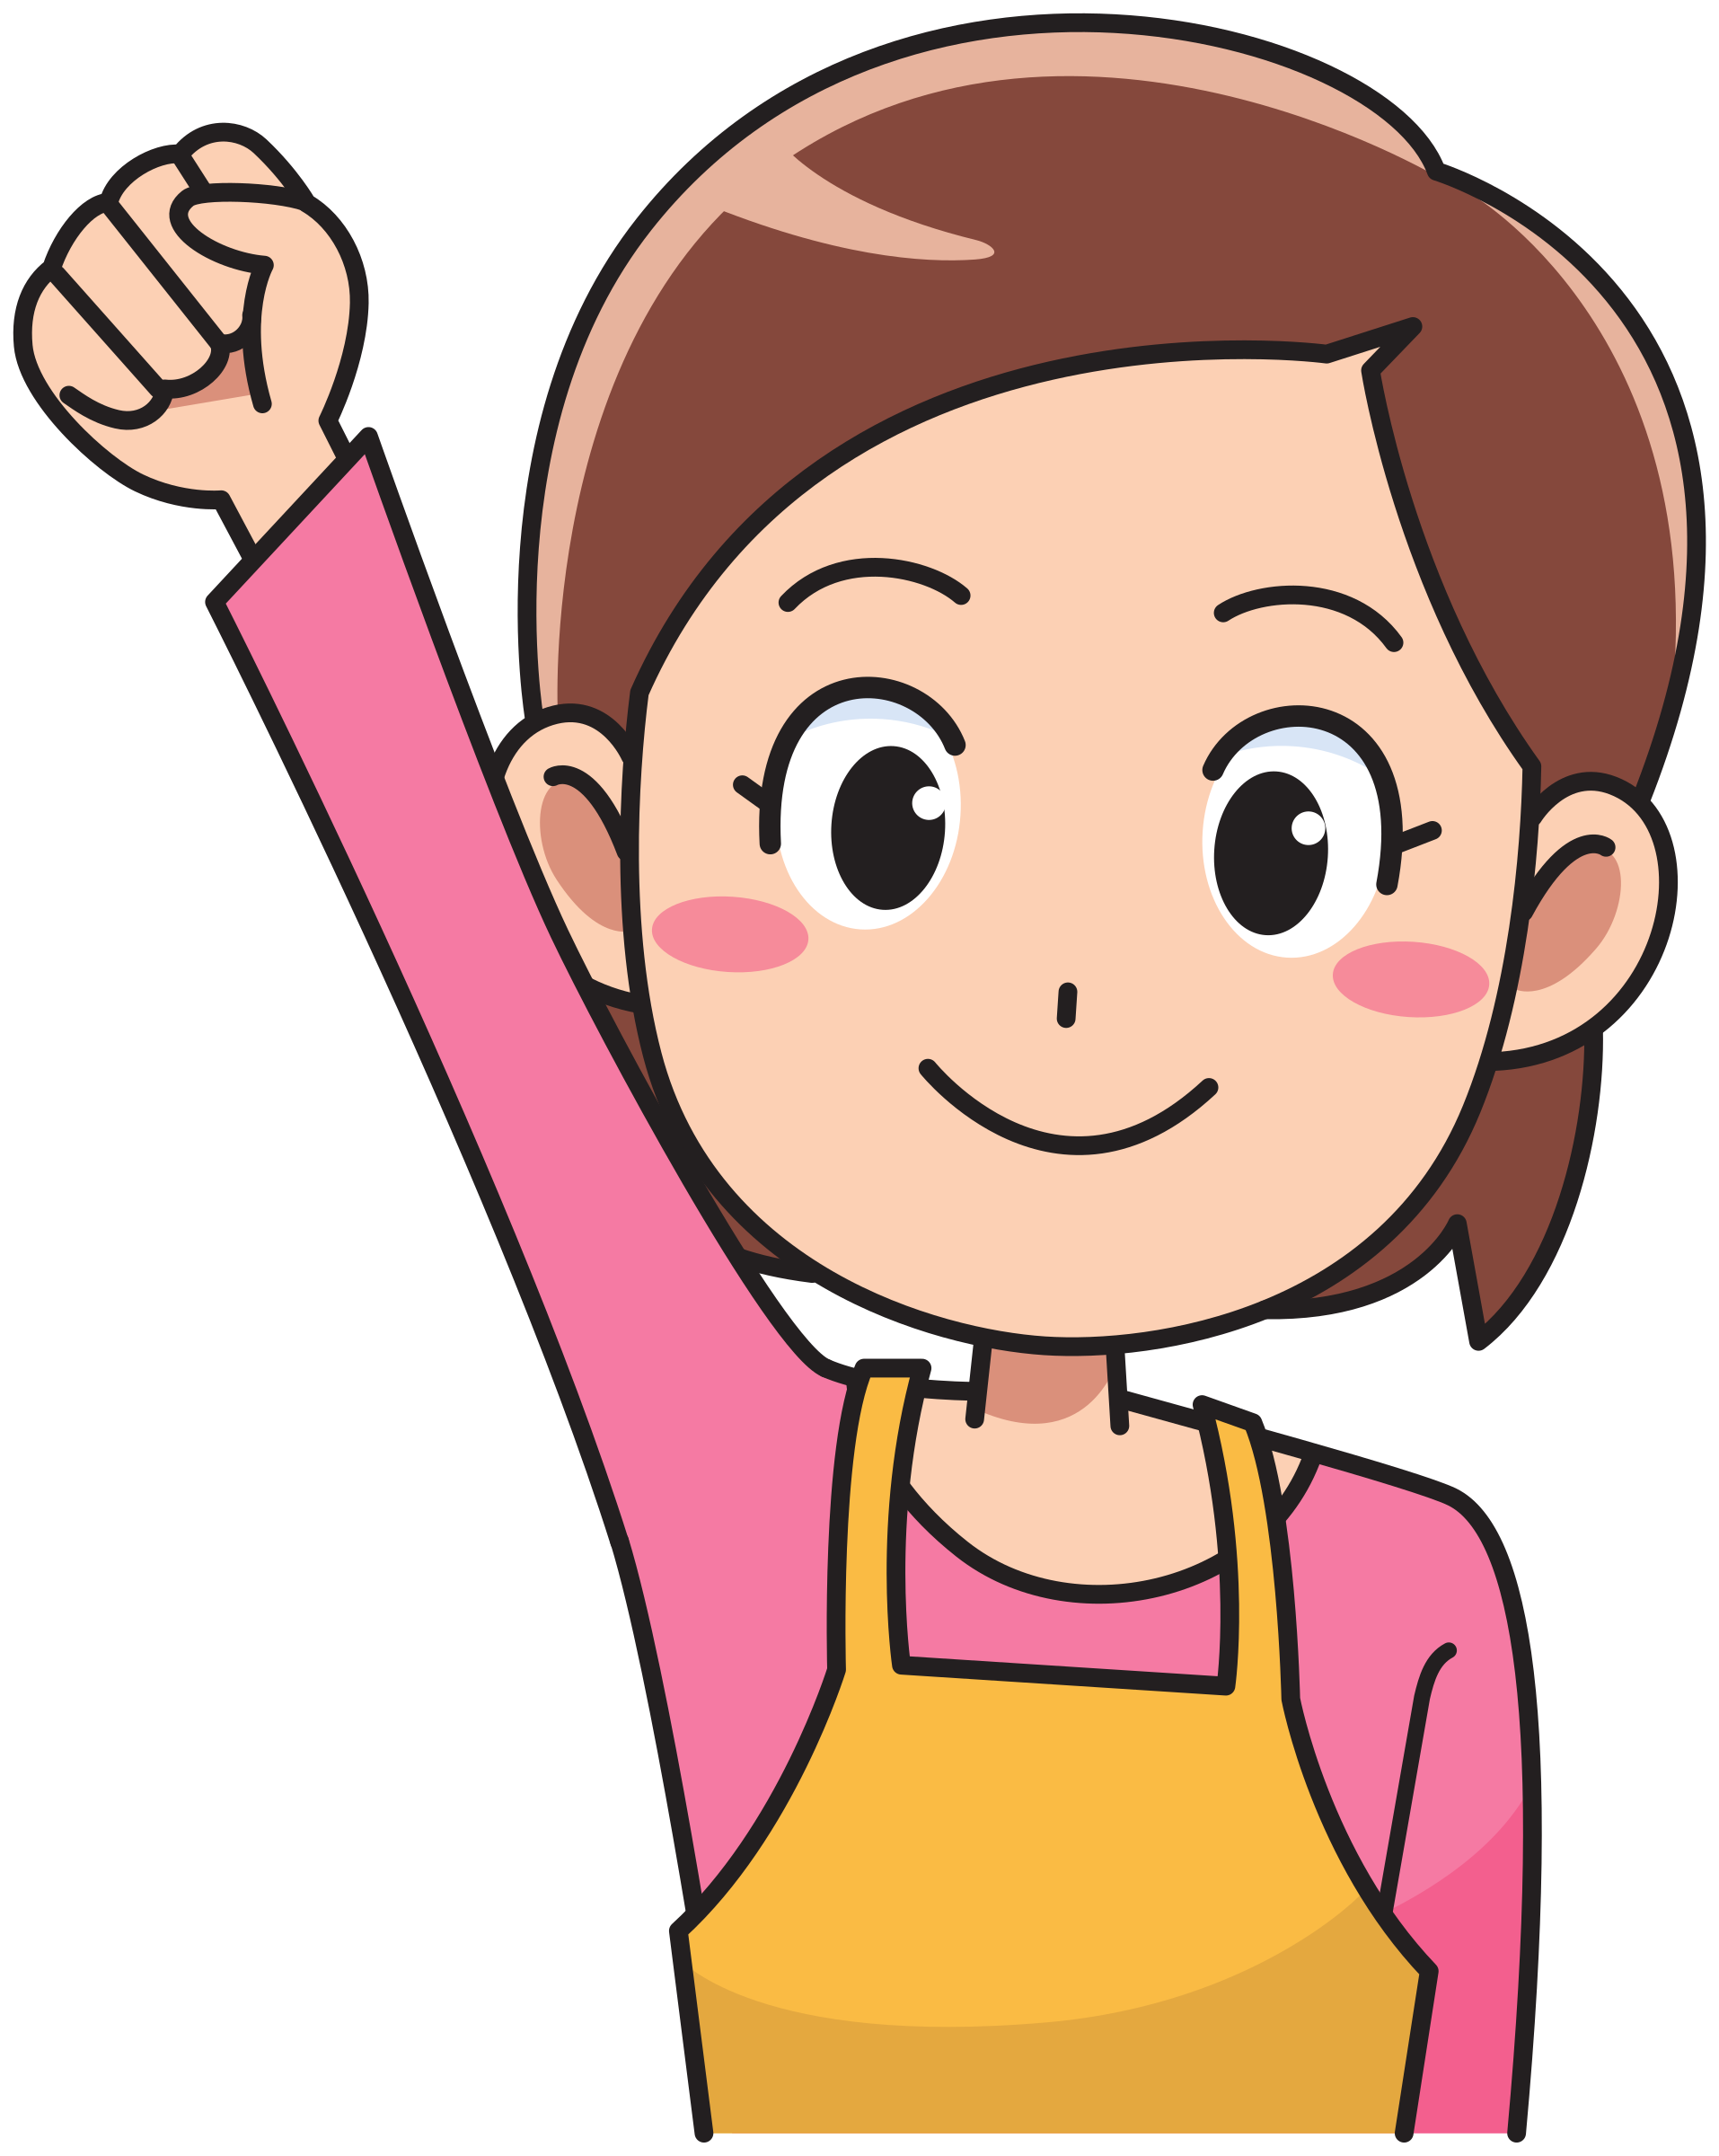 Nose clipart woman's. Woman homemaker icons png